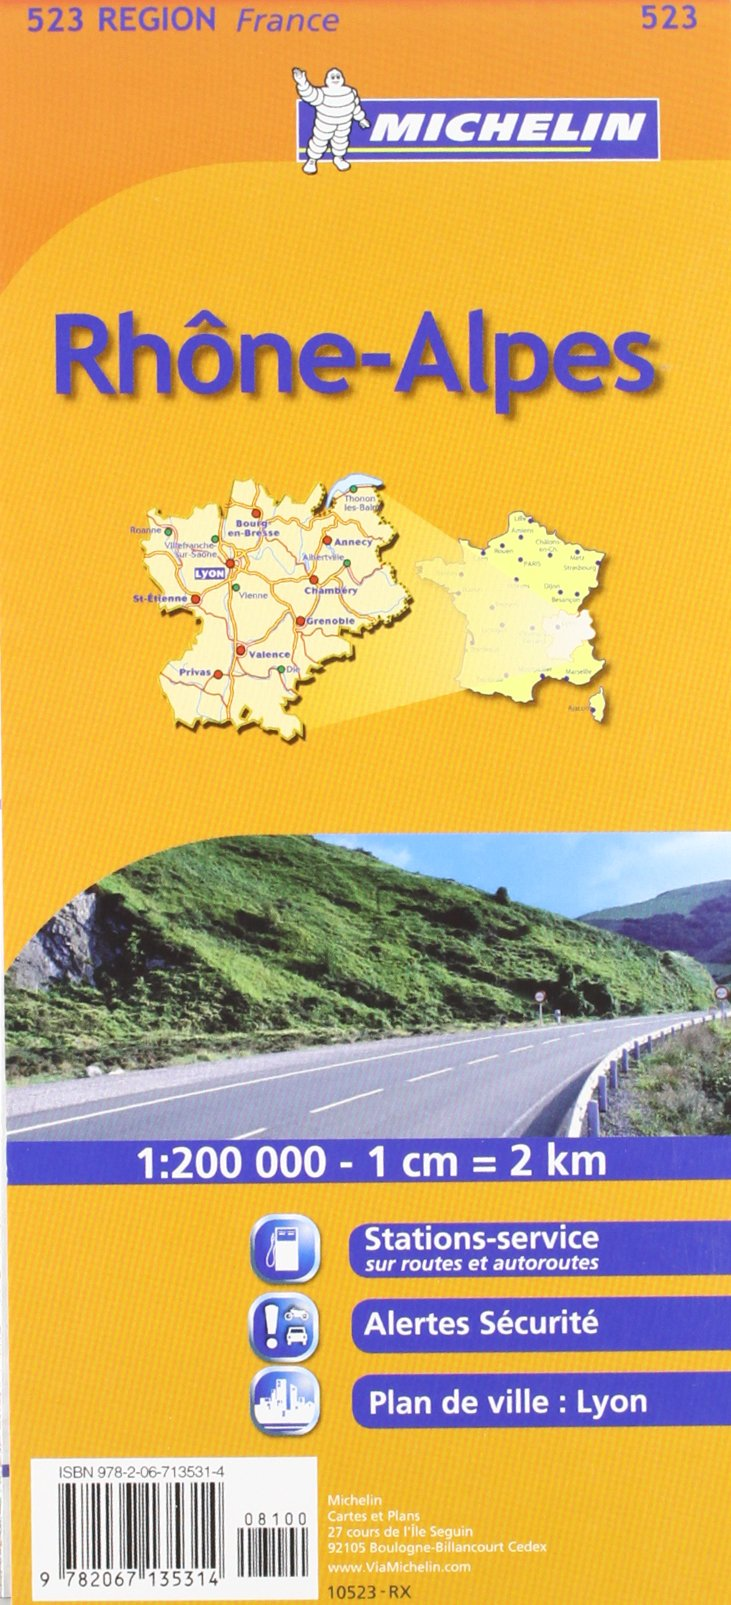 Rh ne Alpes Regional France Map (Michelin Maps)